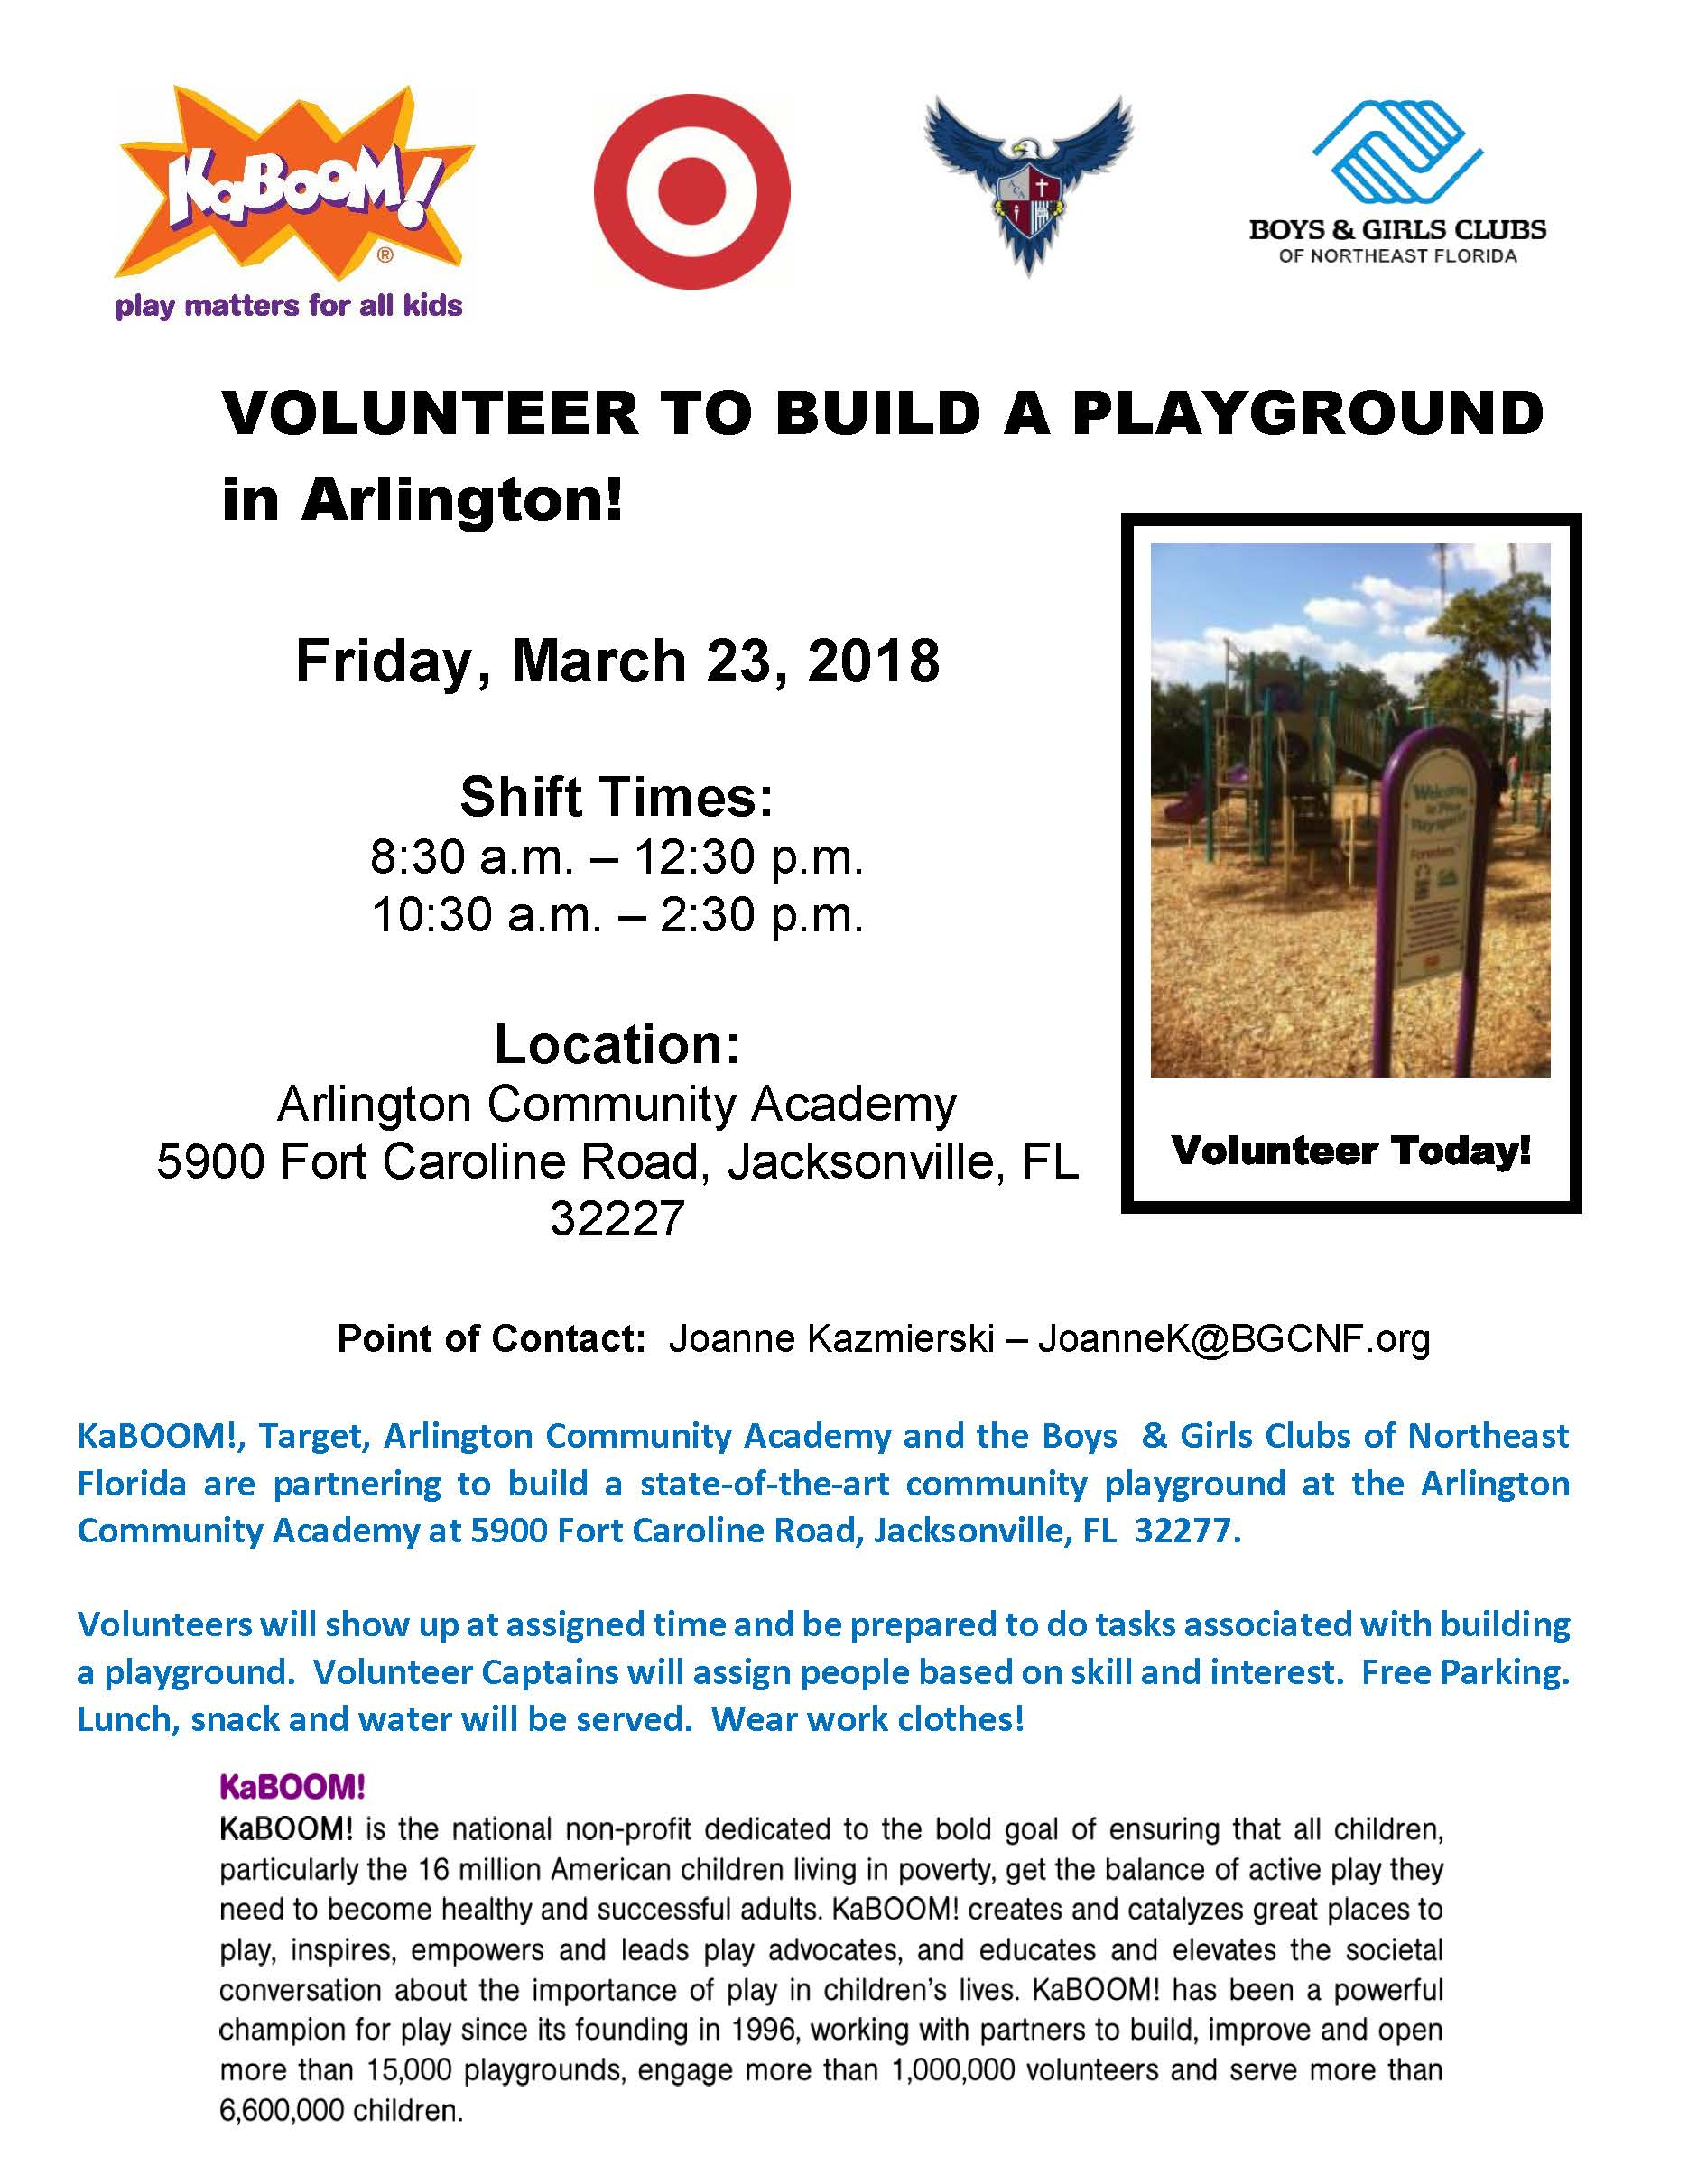 3.23.2018 KaBoom - Building a Playground Volunteer Opportunity - March 23, 2018 Boys & Girls Clubs of NE FL Flyer.jpg